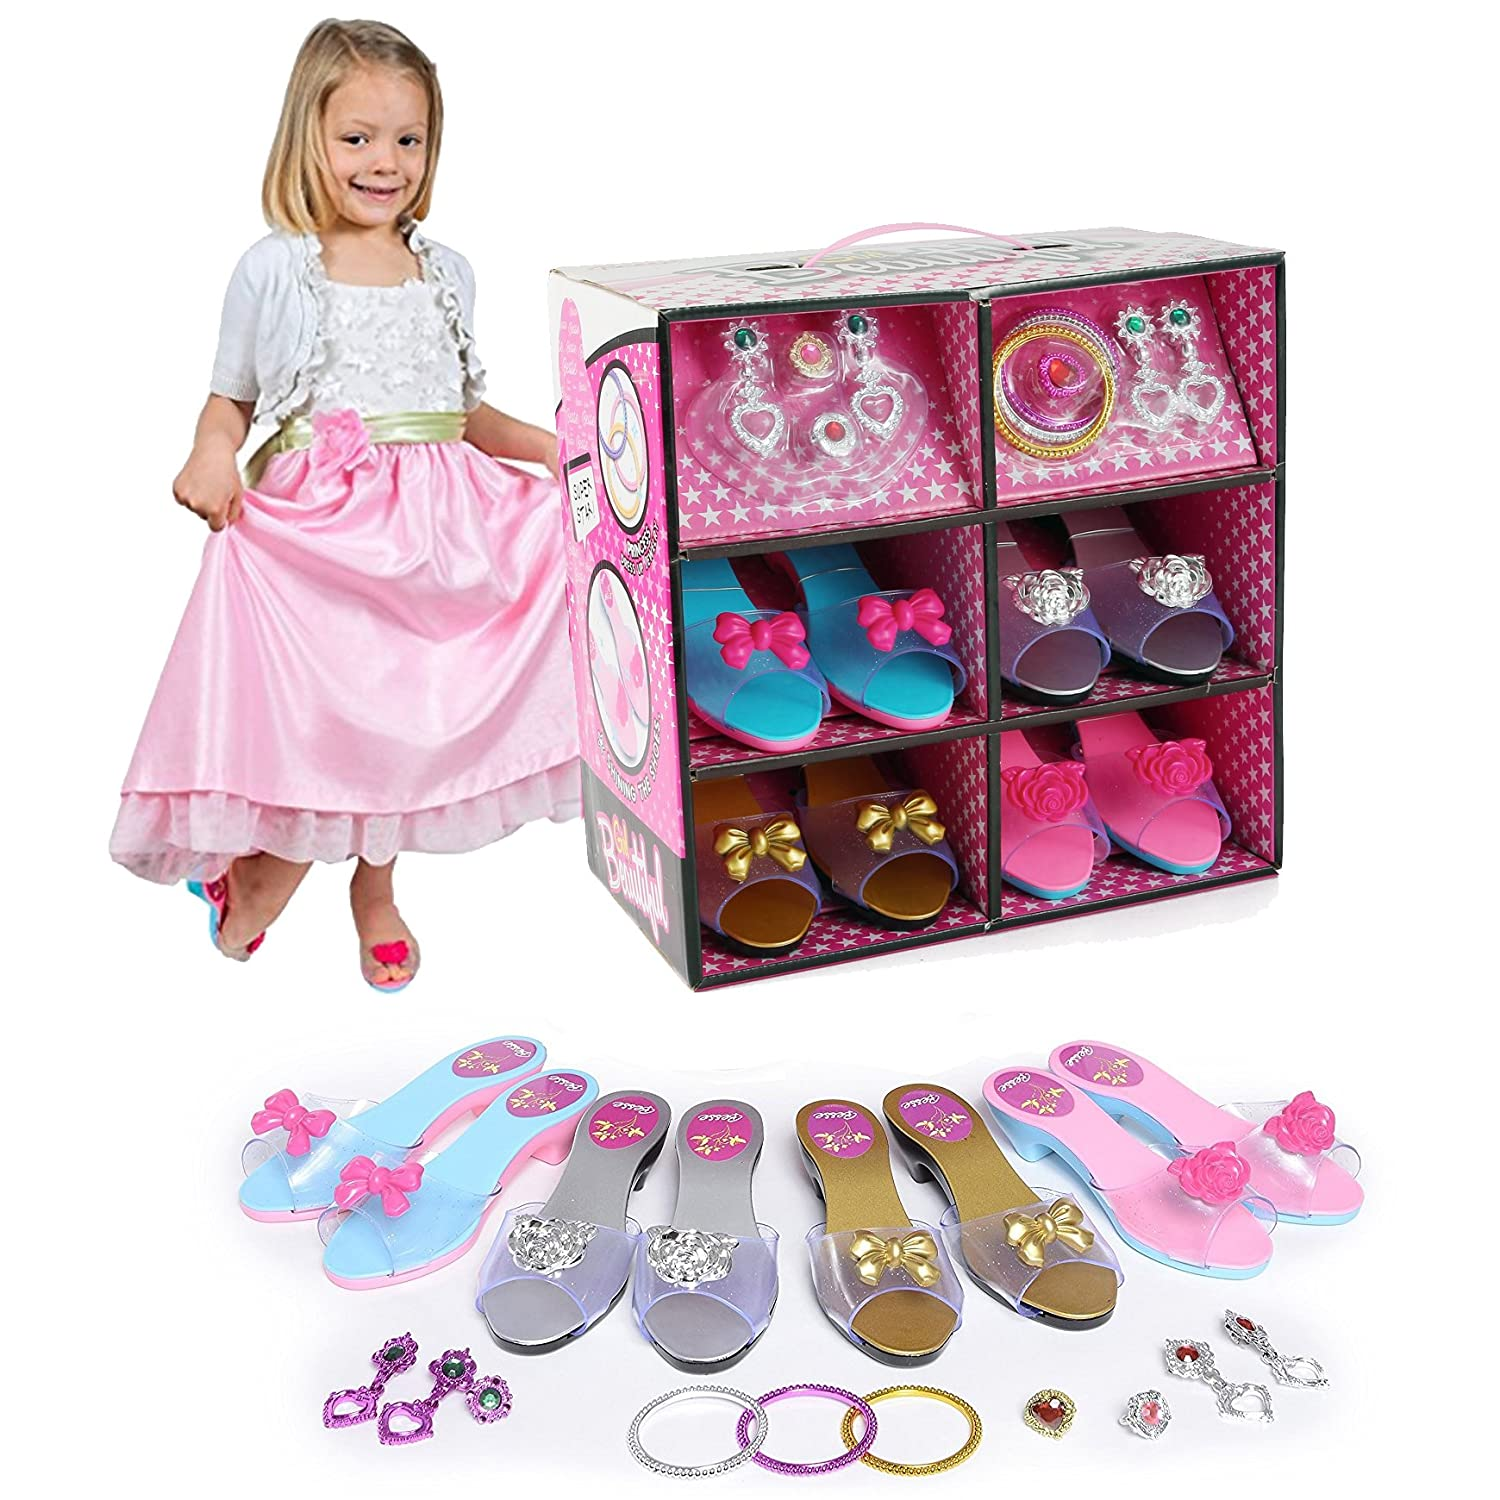 Princess Dress Up & Play Shoe and Jewelry Boutique (Includes 4 Pairs of Shoes + Fashion Accessories) Liberty Imports